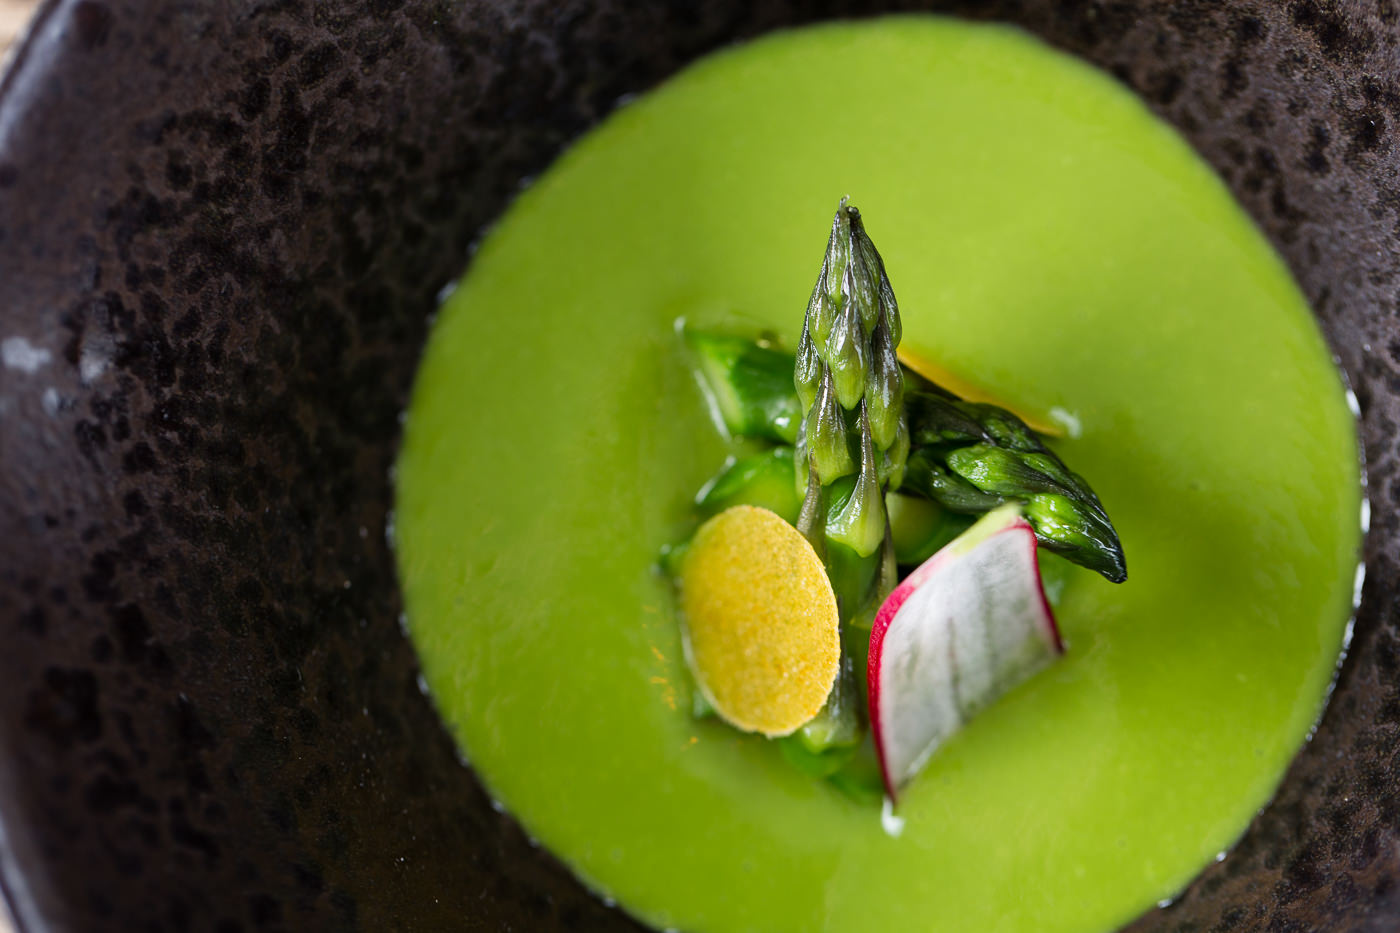 Green soup sits in a dark charcoal dappled bowl with asparagus tips and radish stacked in the centre